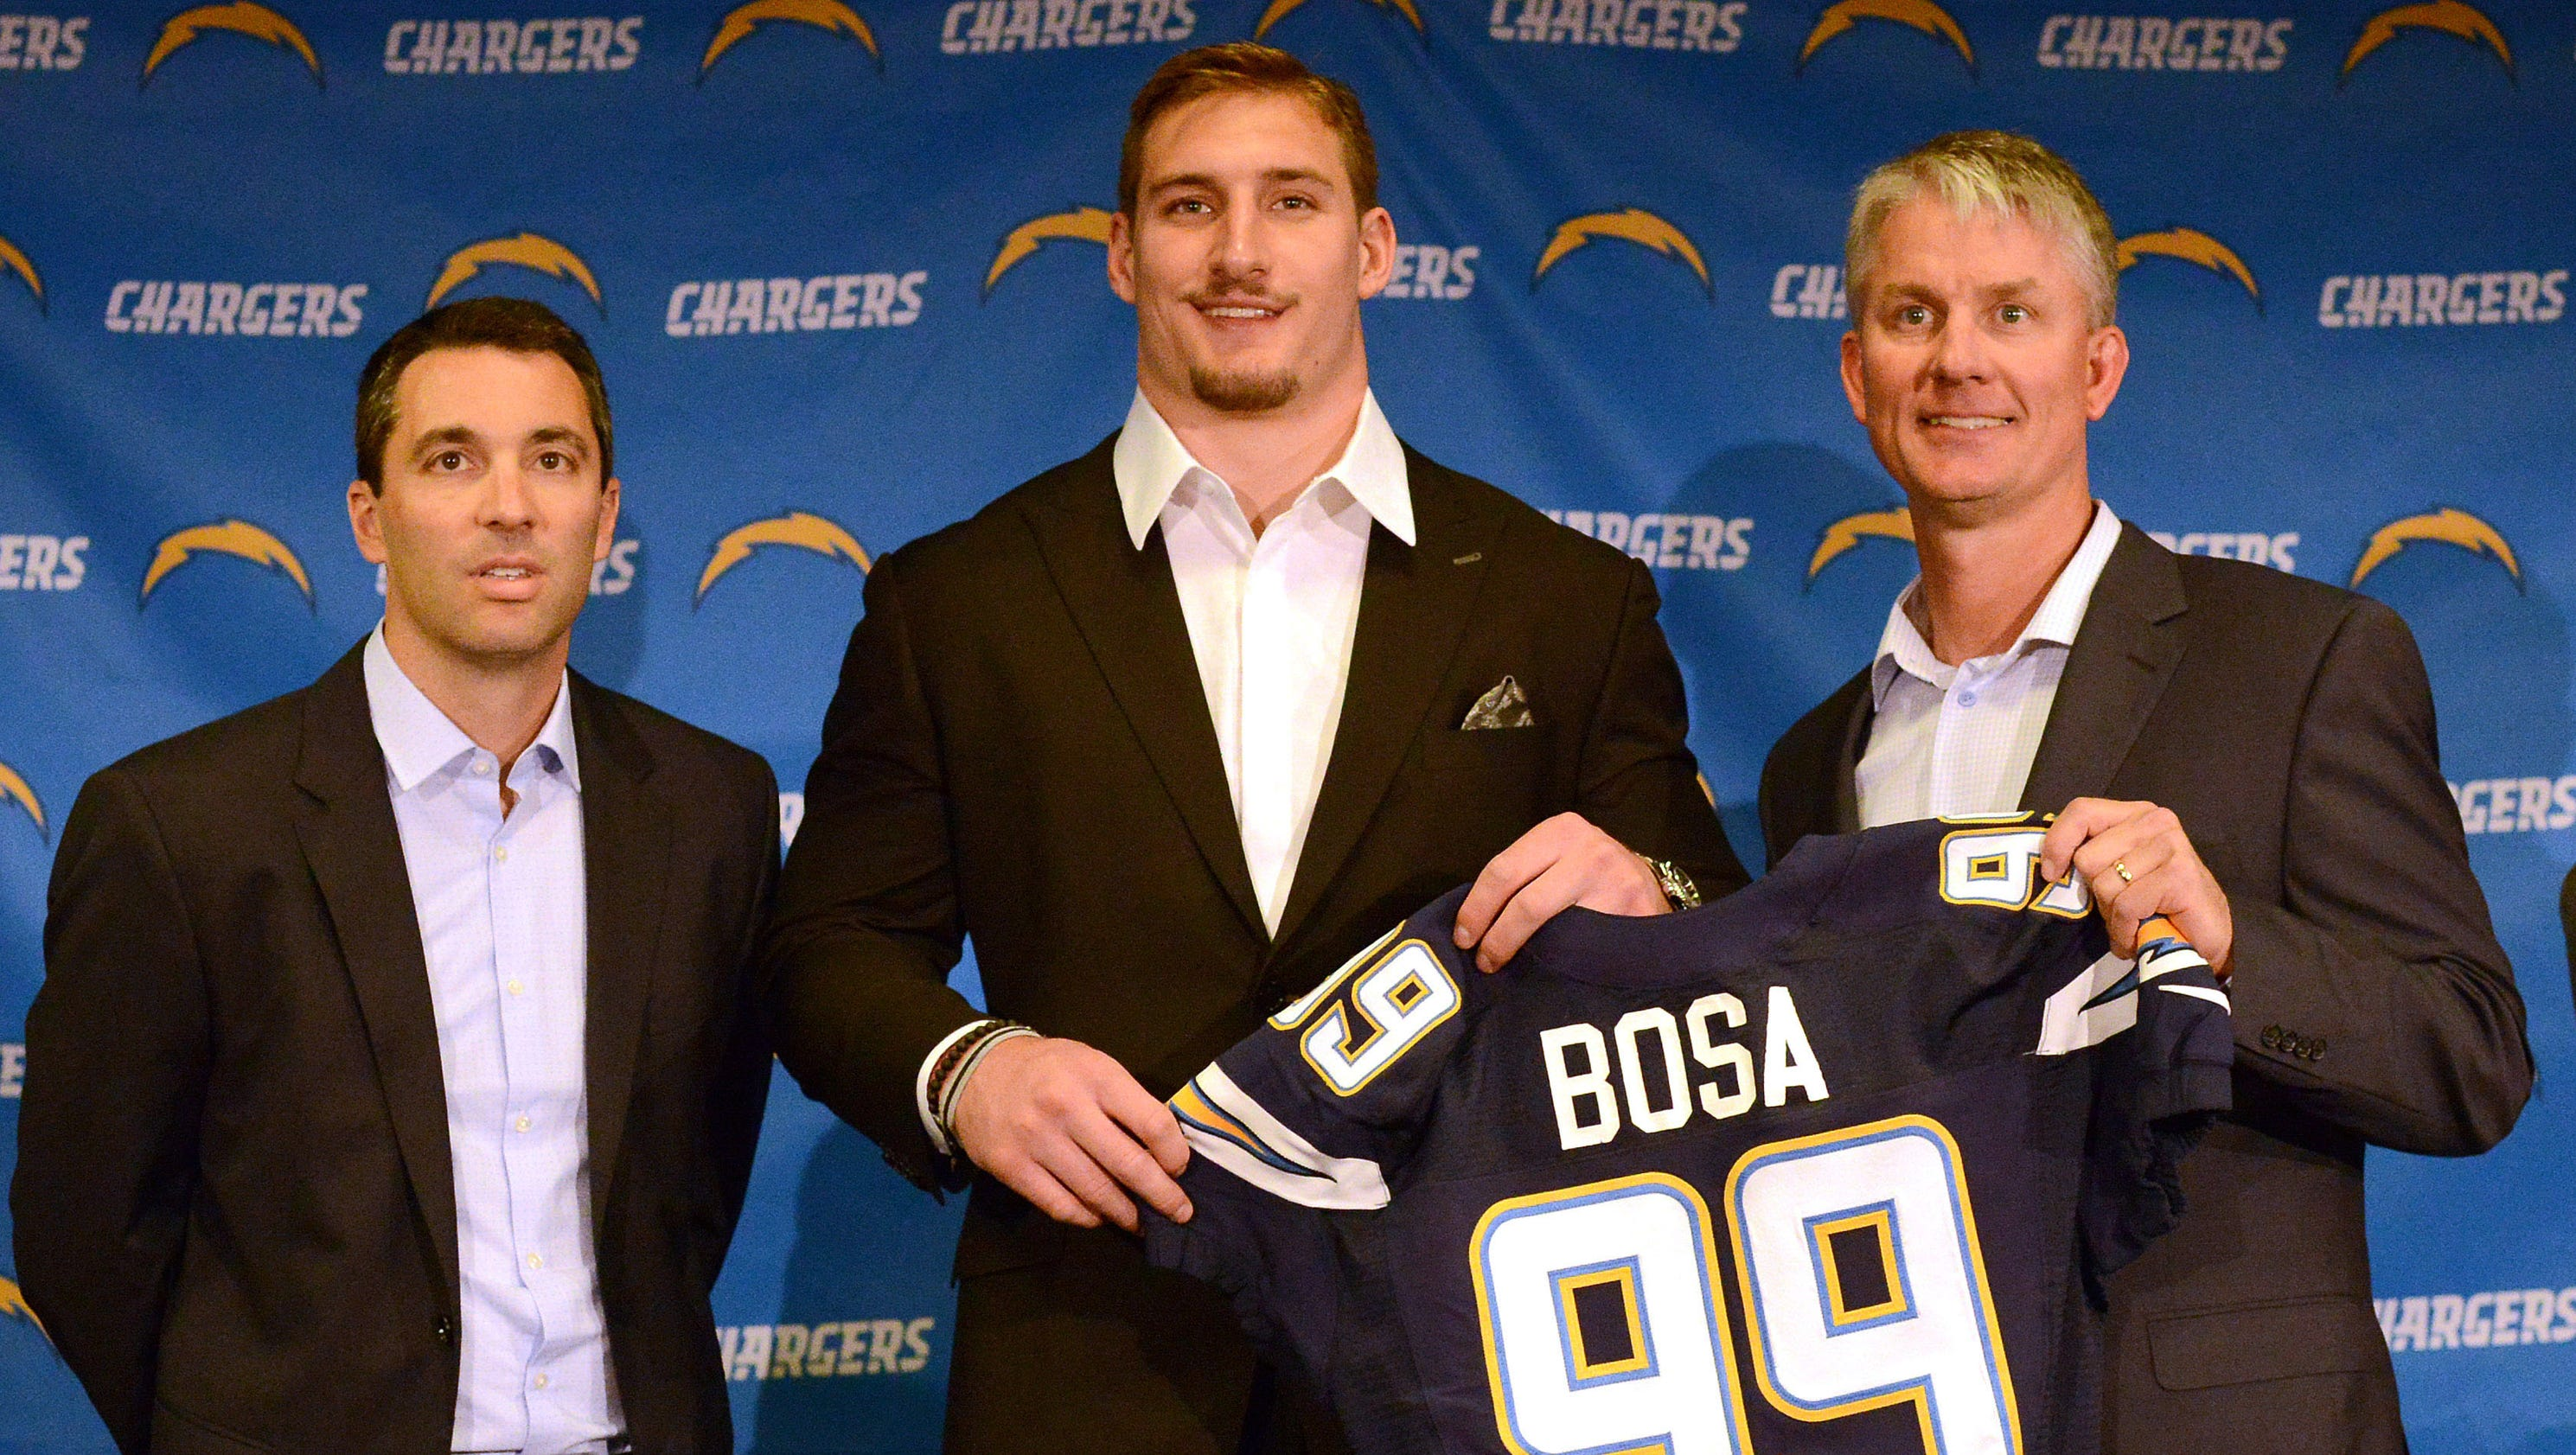 Chargers scorched earth move with Joey Bosa leaves few options